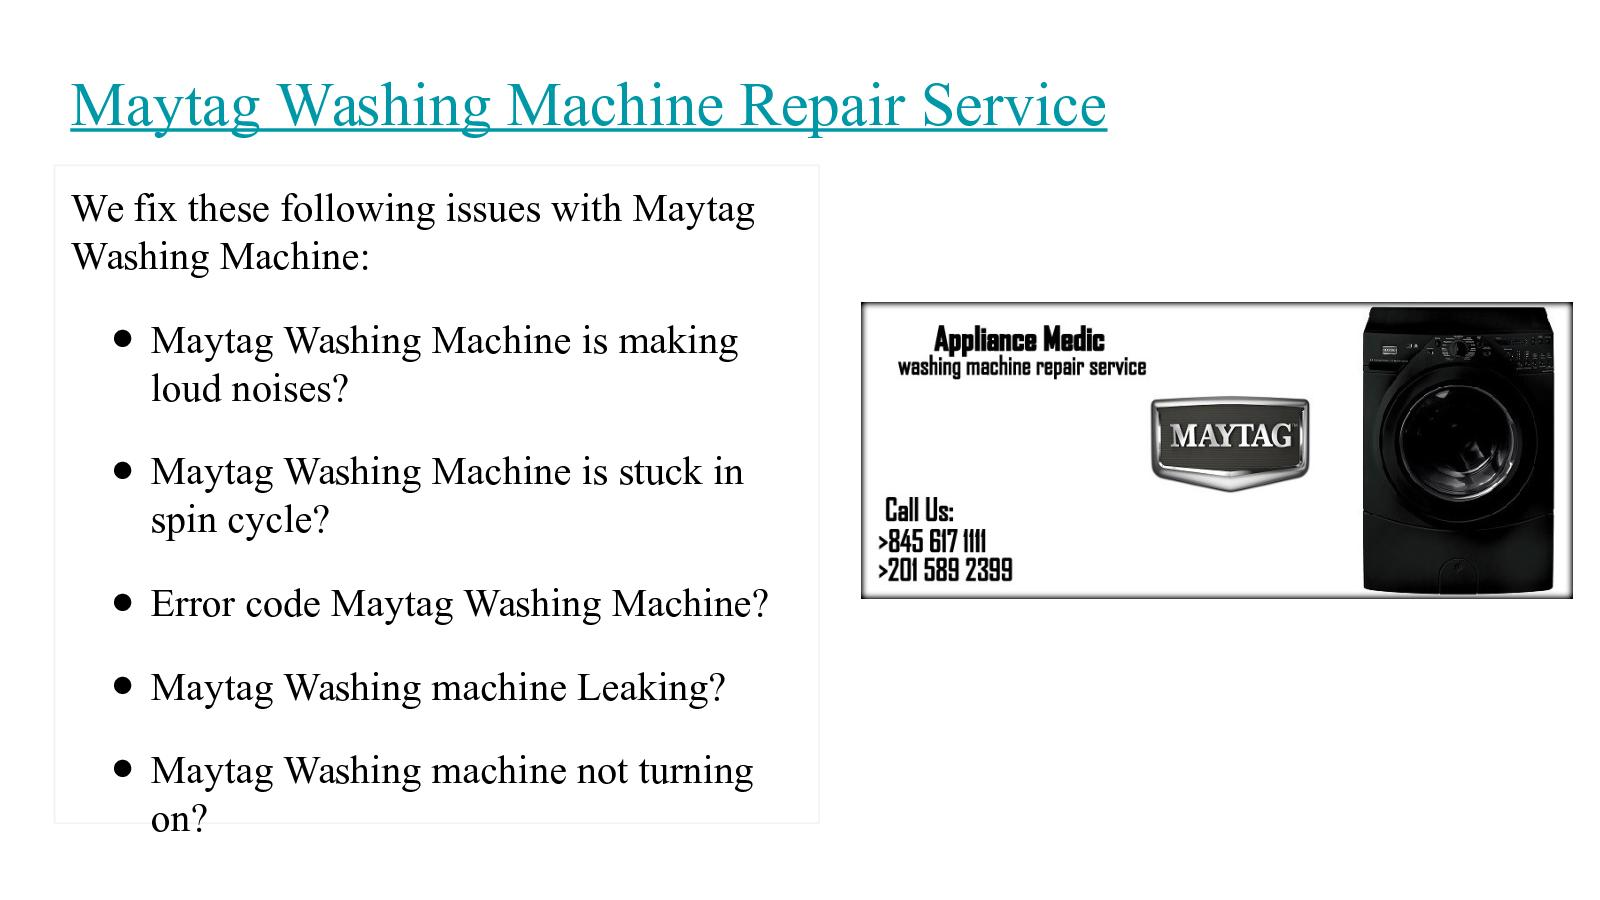 Calaméo - Maytag Washing Machine Repair Service